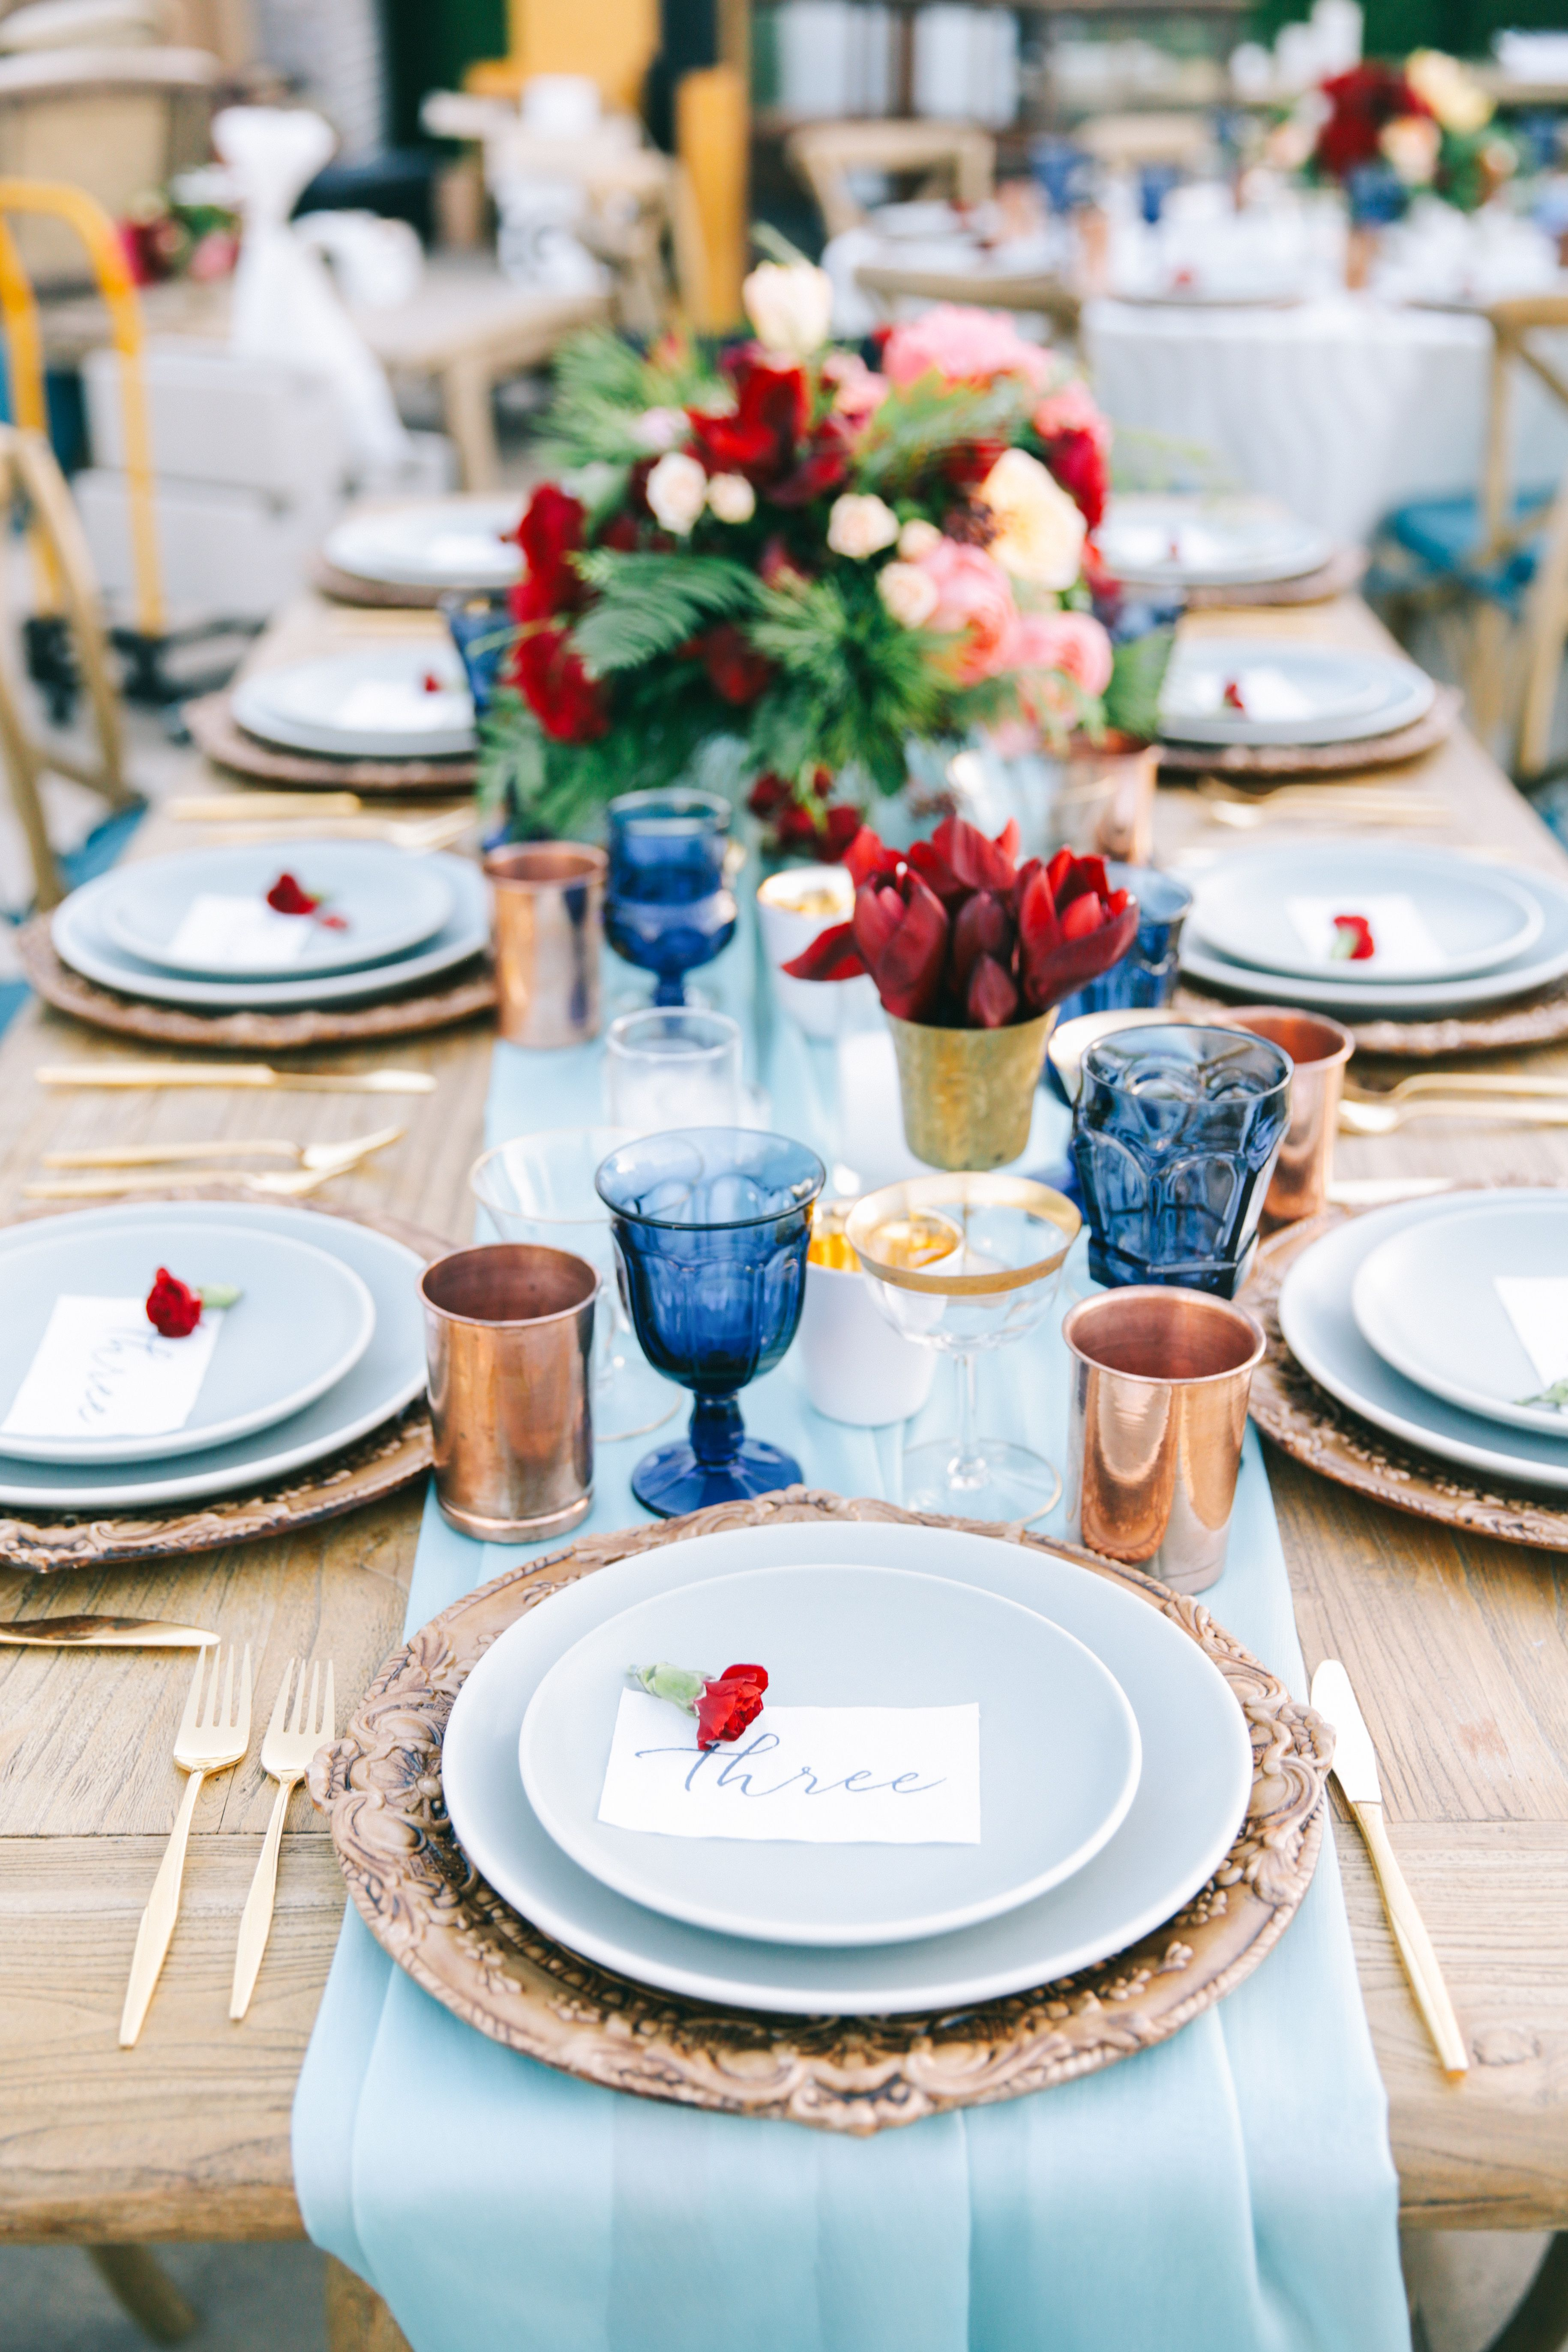 Page Blue Dinner Plates and Table Runners elegant table setting